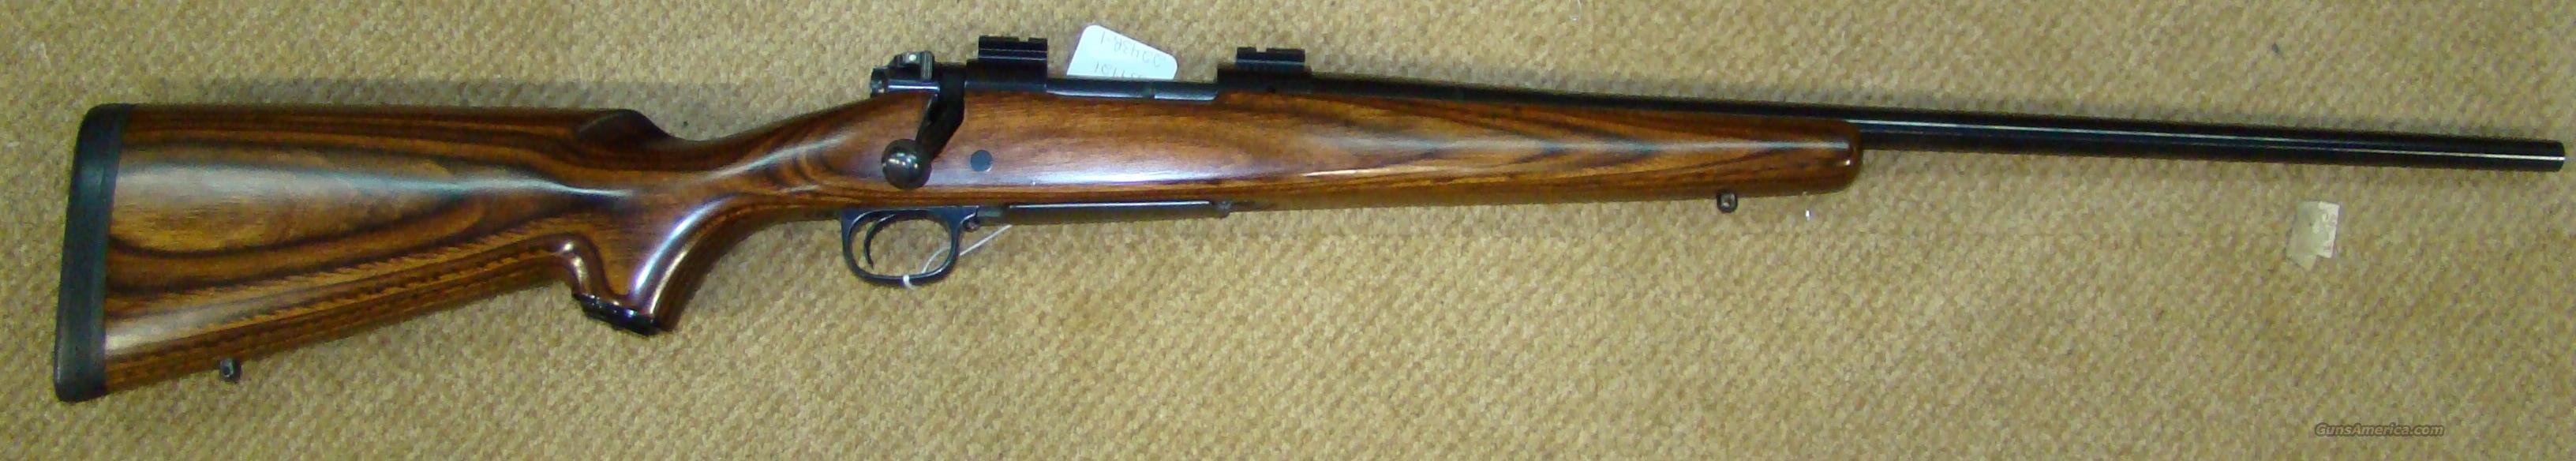 Winchester model 70 300 WSM  Guns > Rifles > Winchester Rifles - Modern Bolt/Auto/Single > Model 70 > Post-64